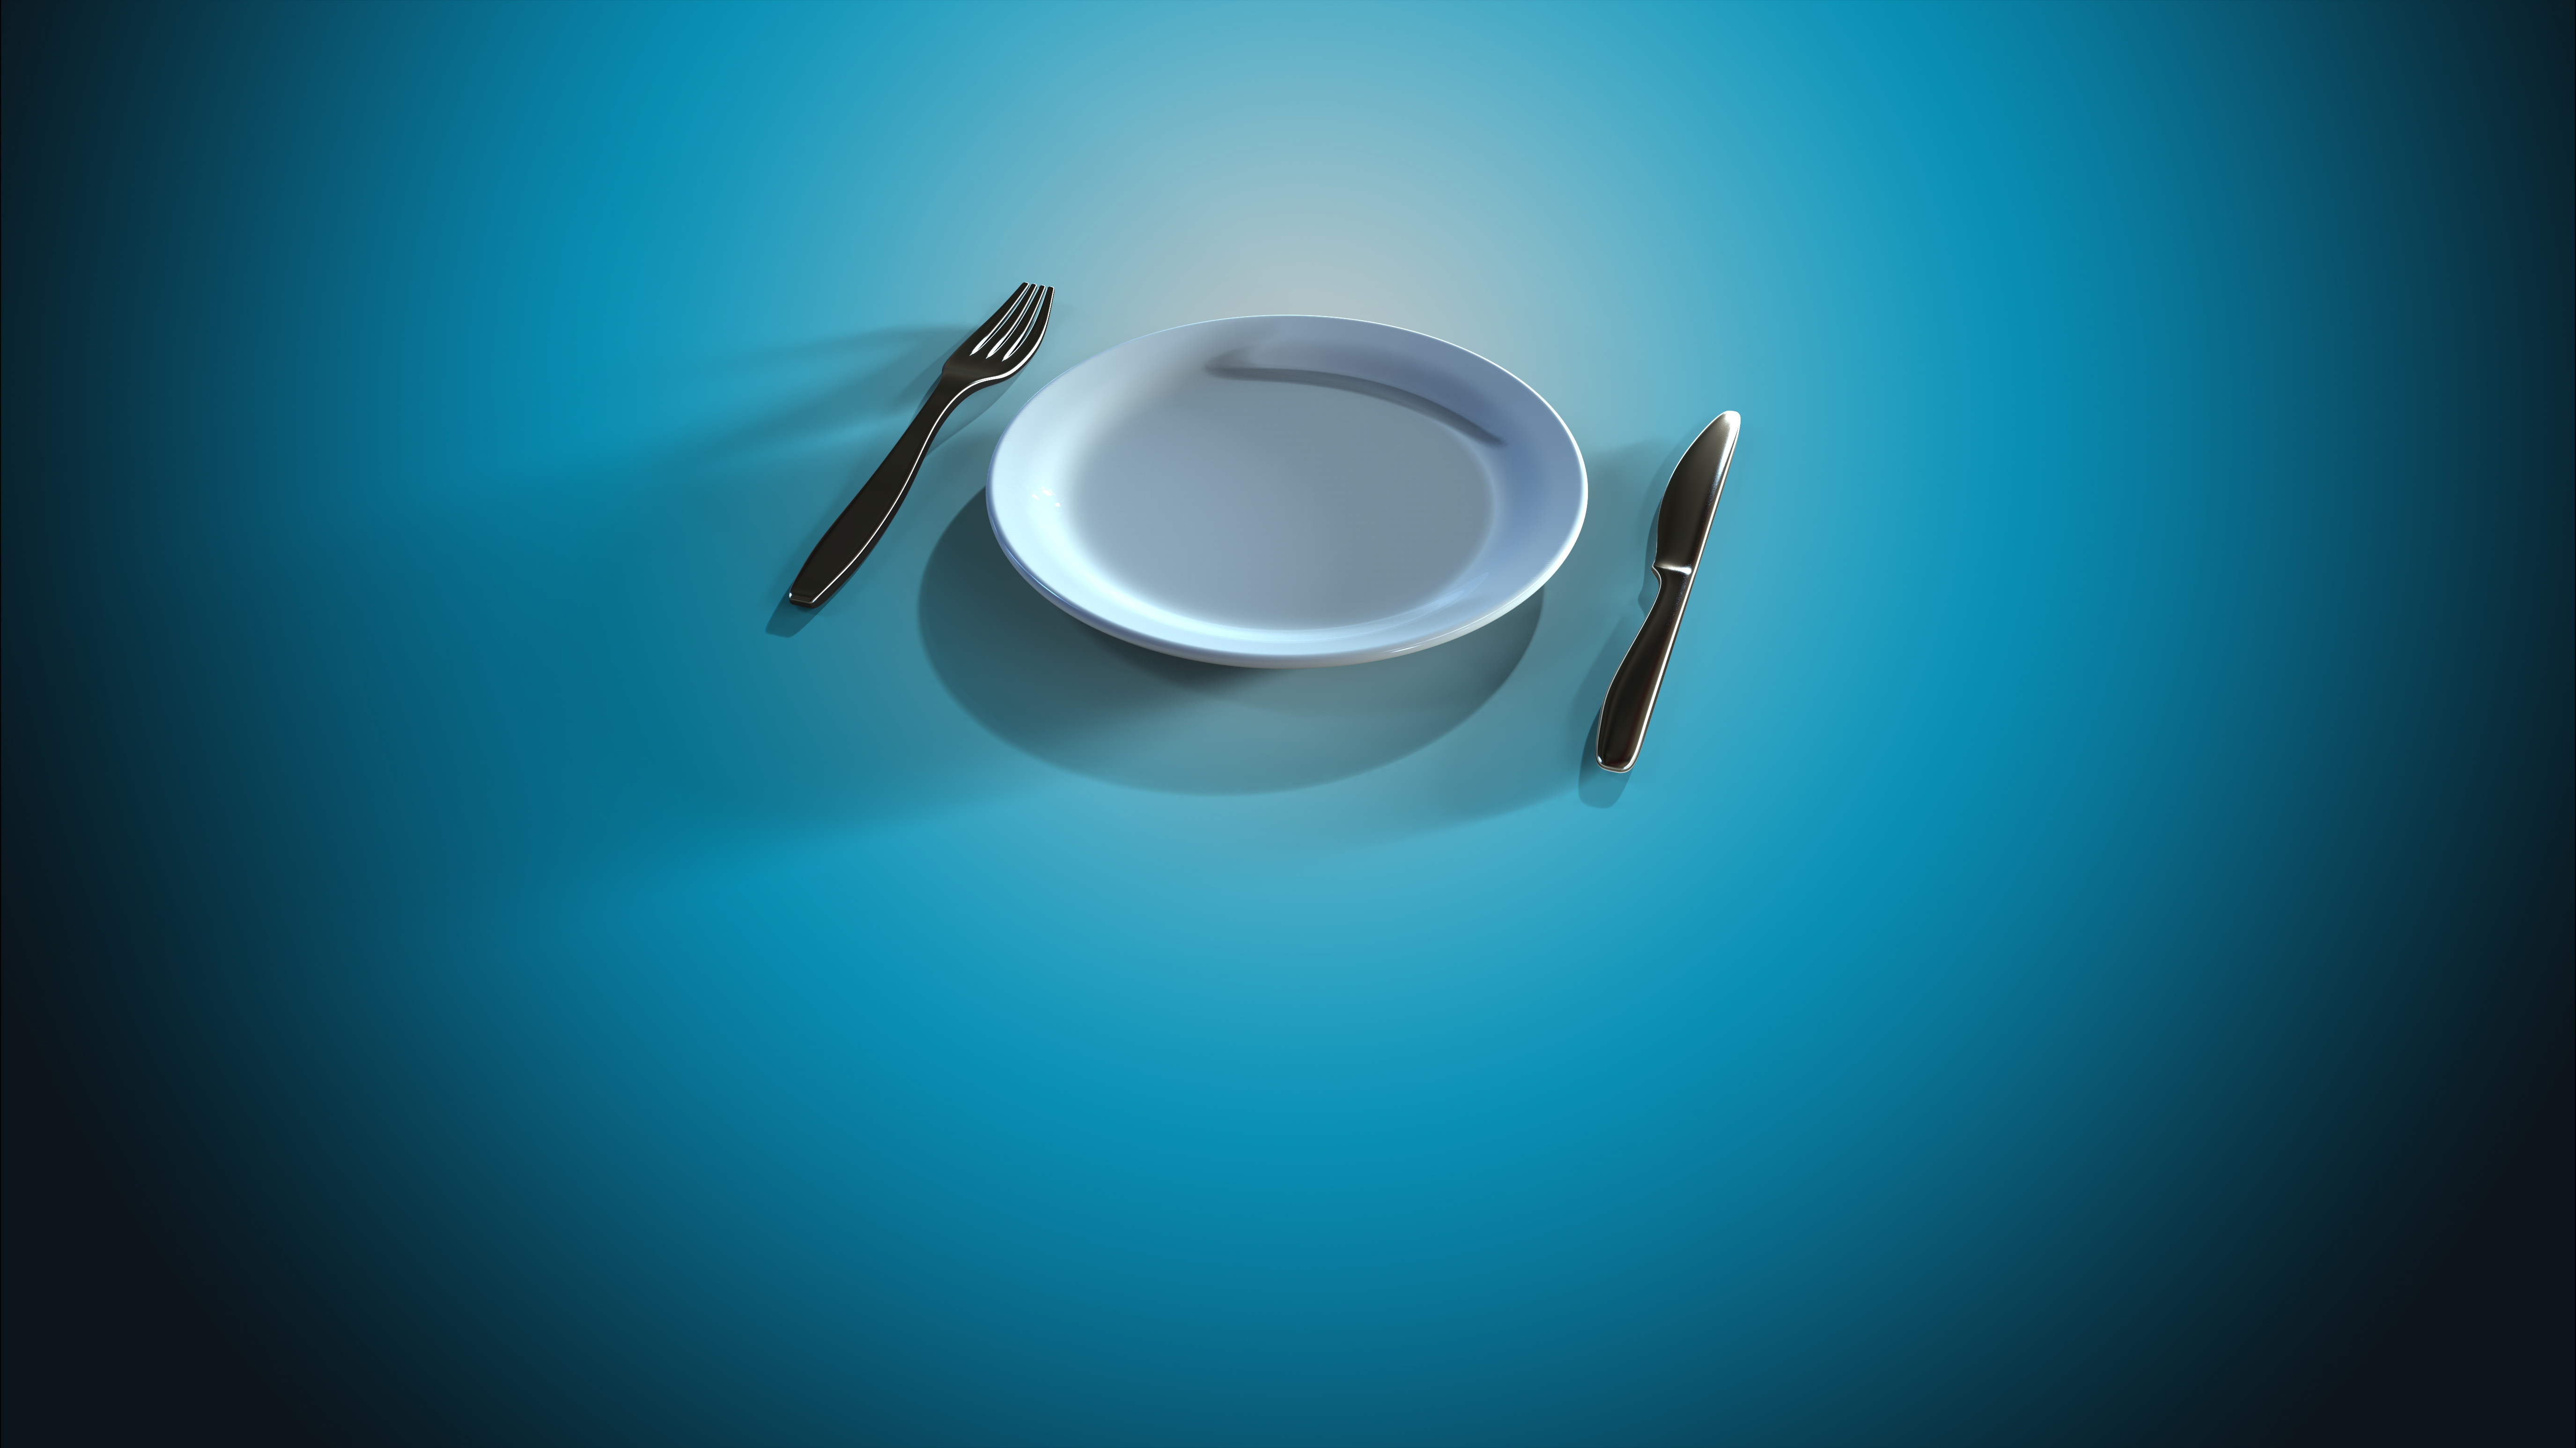 New research has found that preceding a dietary change with a short stretch of fasting may improve the gut's response to the new diet